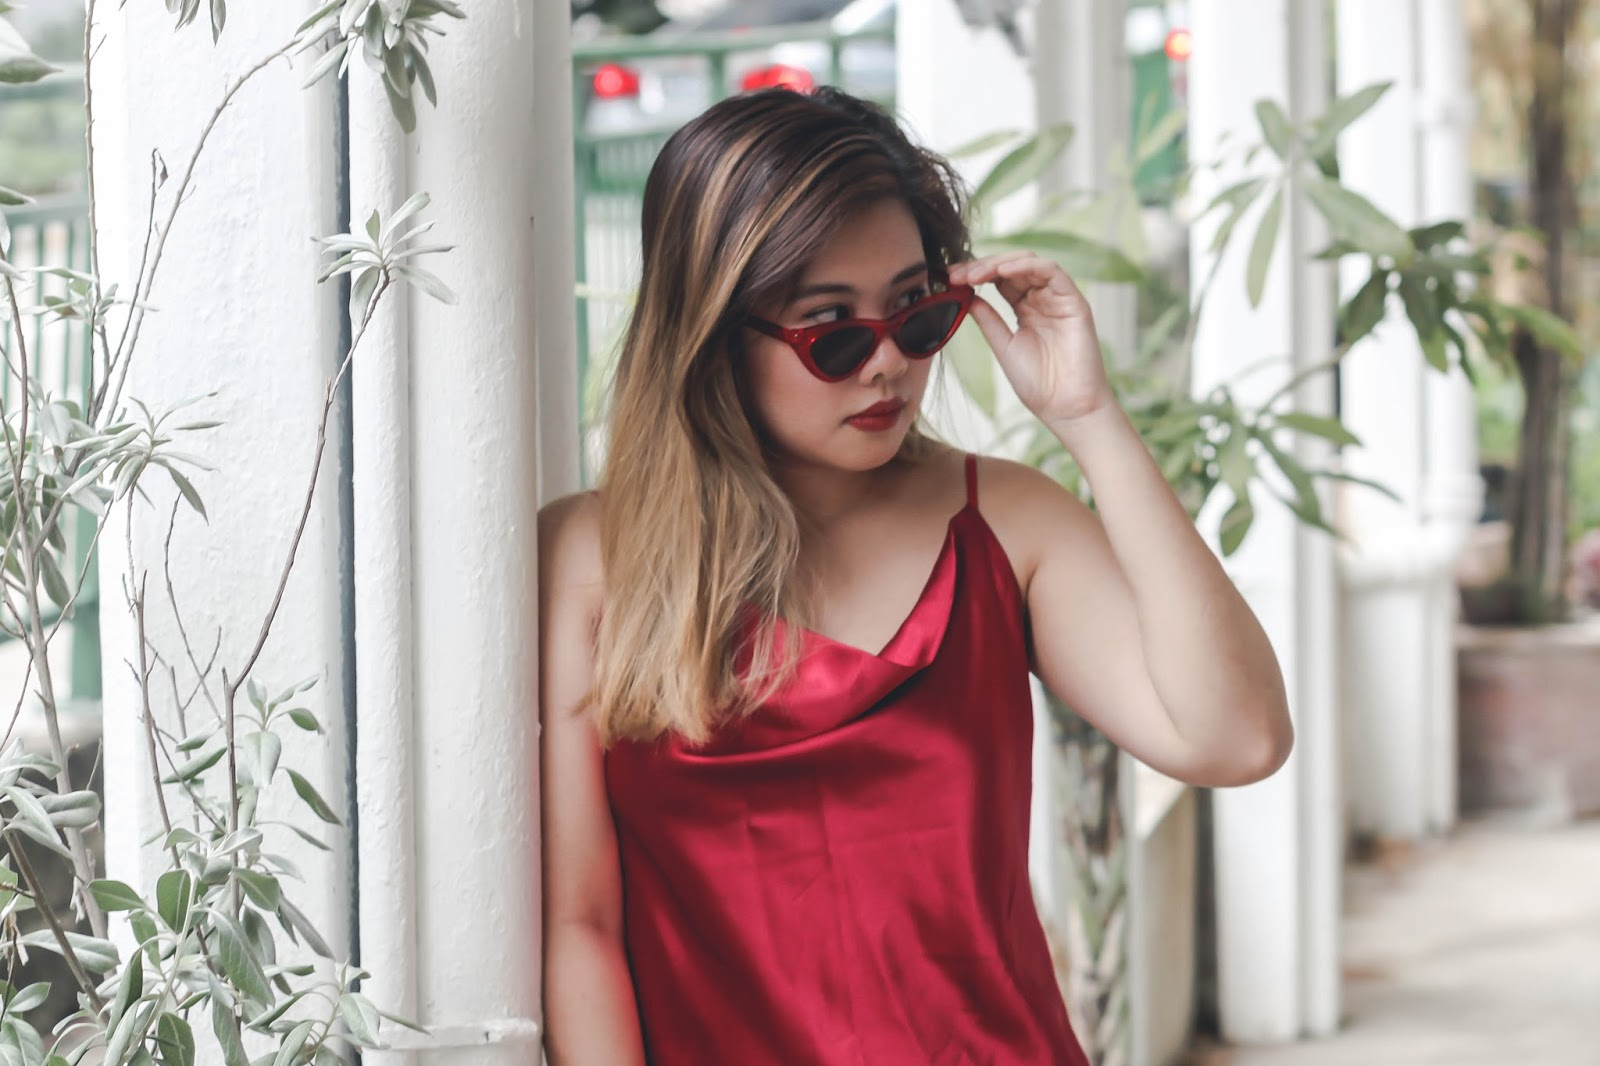 singapore blogger stylist fashion style street ootd red how to style valentines day 2018 chinese lunar new year photography outfit look book